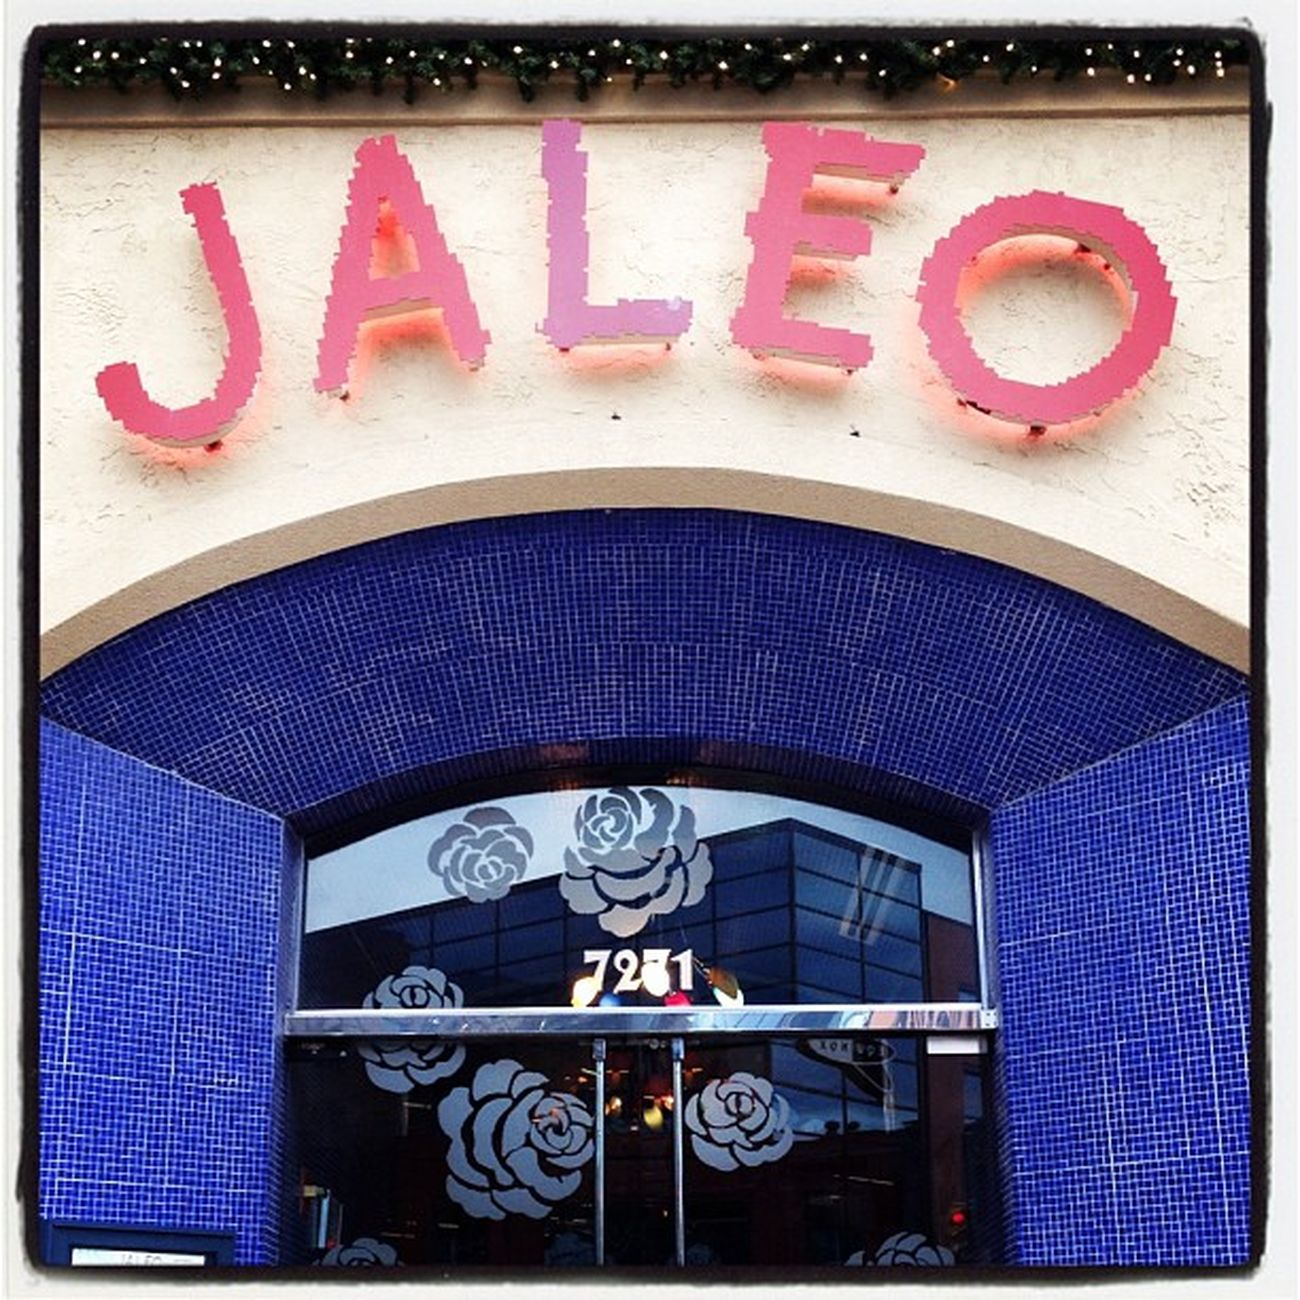 Jaleo. #bethesdarow #jomo #iphoneography #bethesda #food #tapas #joseandres #spanish #restaurant IPhoneography Food Restaurant Tapas Bethesda Spanish Jomo Bethesdarow Joseandres